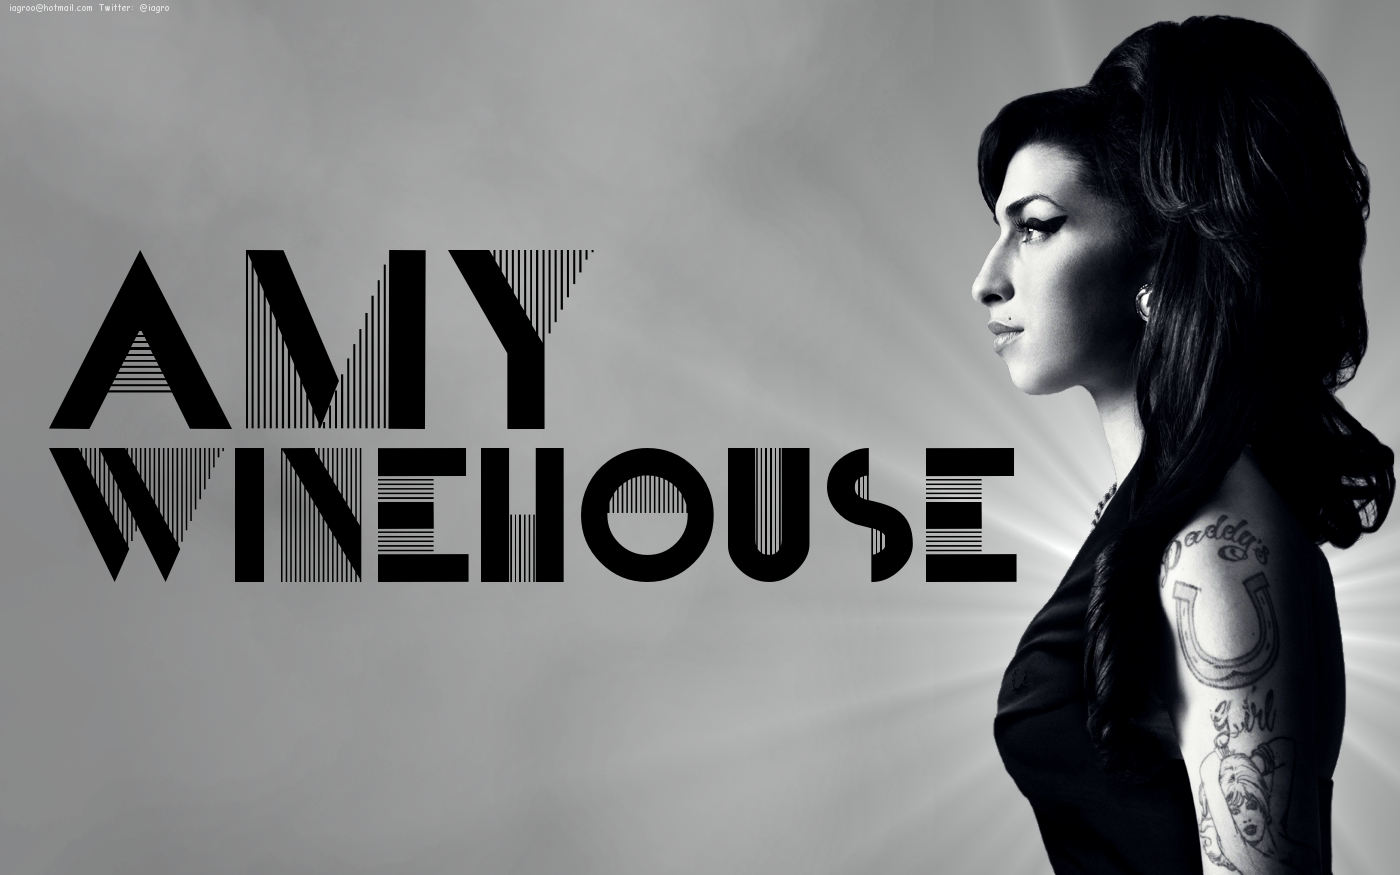 amy winehouse images amy winehouse wallpaper iagro hd